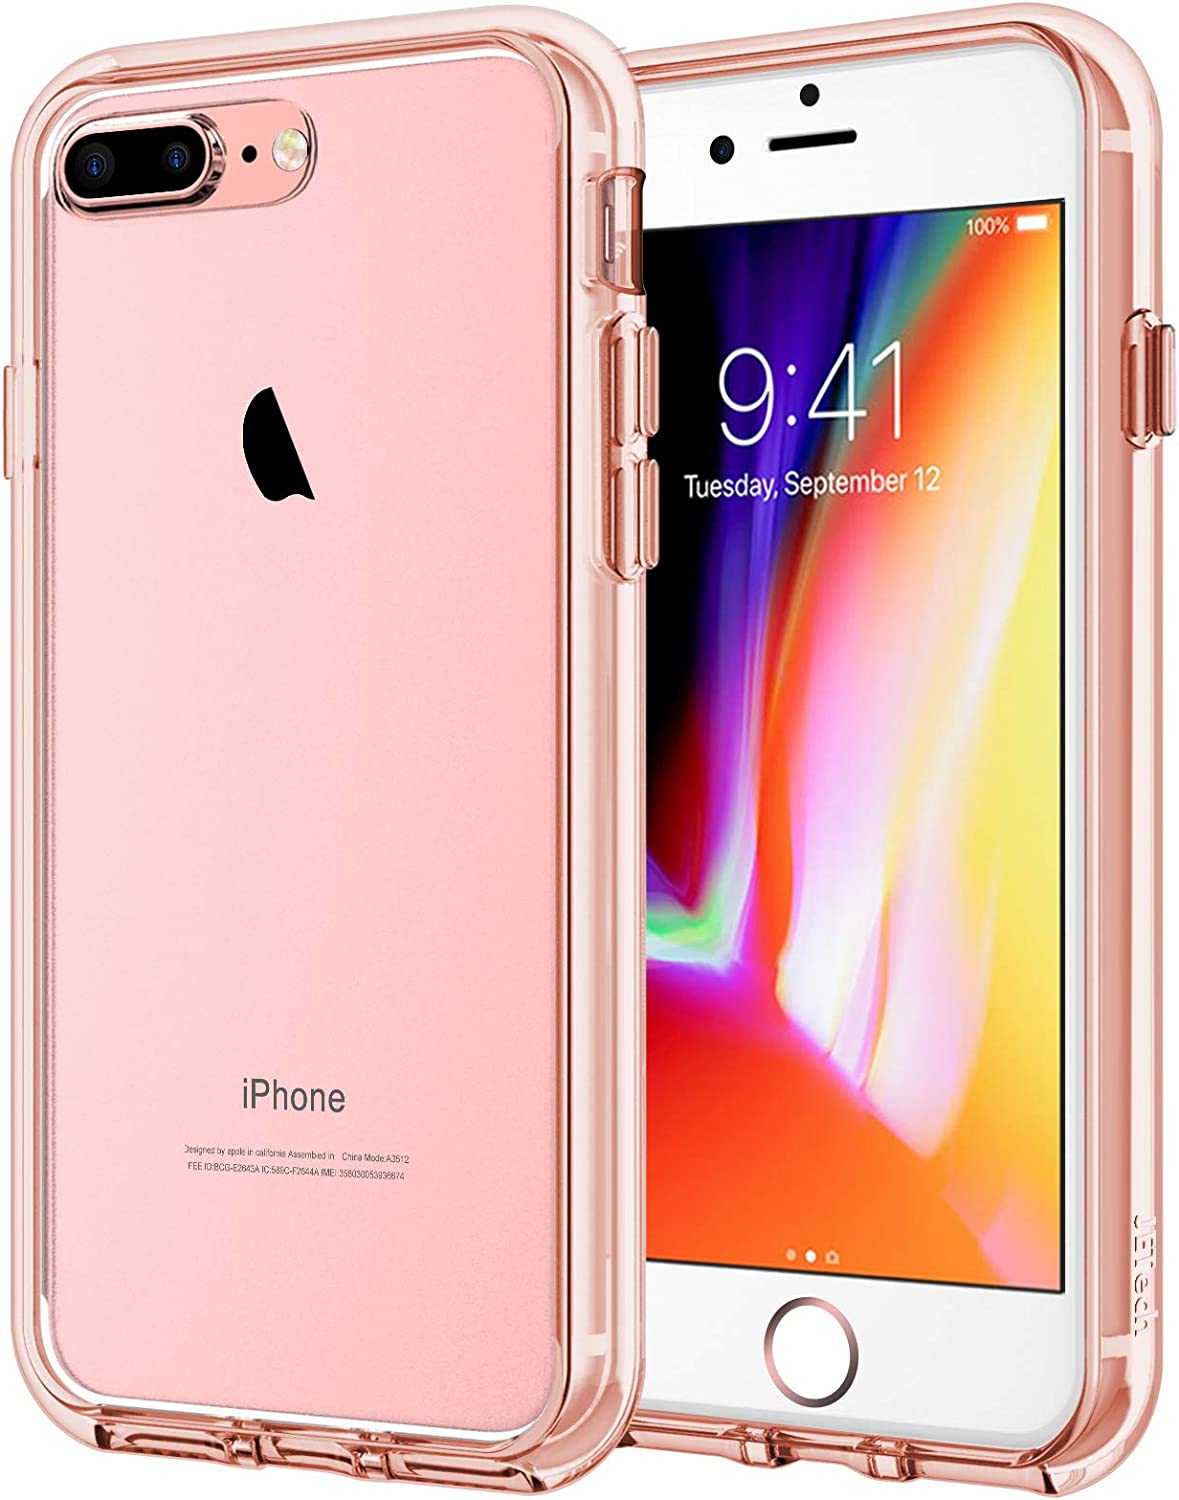 JETech Case for iPhone 8 Plus and iPhone 7 Plus 5.5-Inch, Shock-Absorption Bumper Cover, Anti-Scratch Clear Back (Rose Gold)